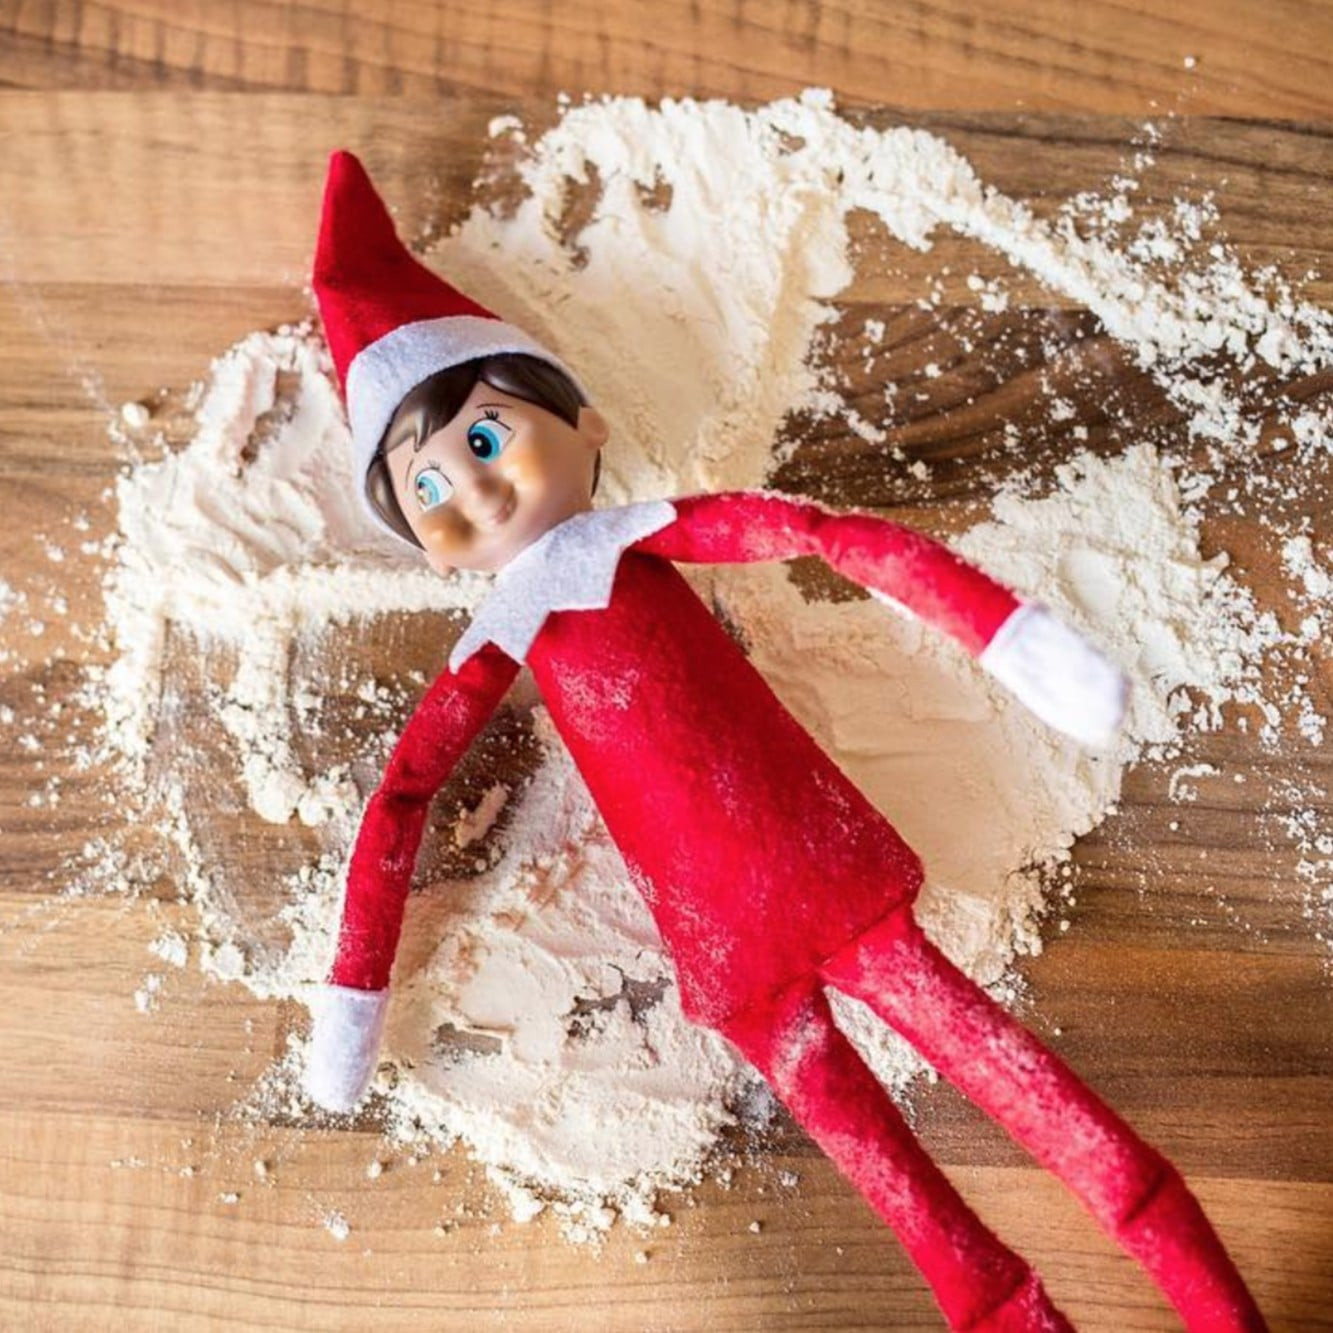 50 Funny Elf on the Shelf Ideas to Make Your Kids,#Elf #elfontheshelfideas